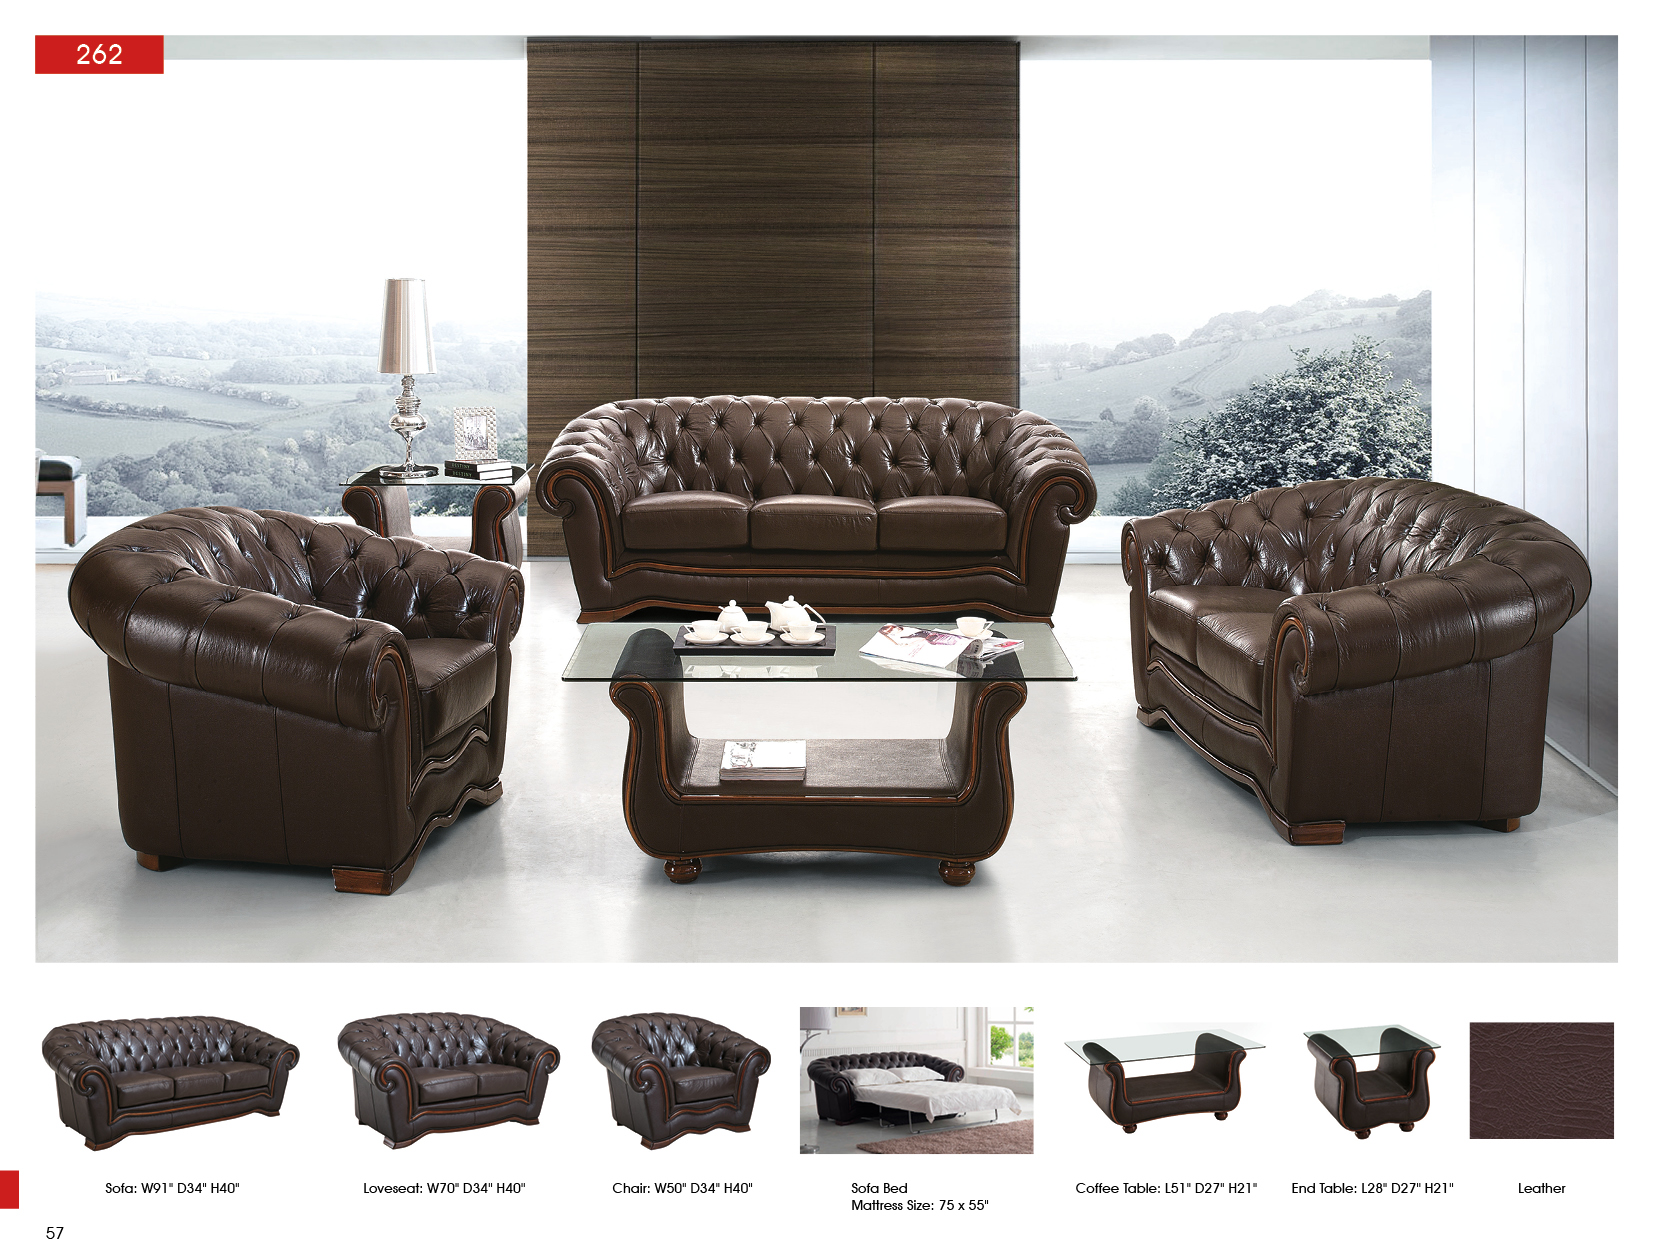 262 full leather sofas loveseats and chairs living room for Full living room furniture sets